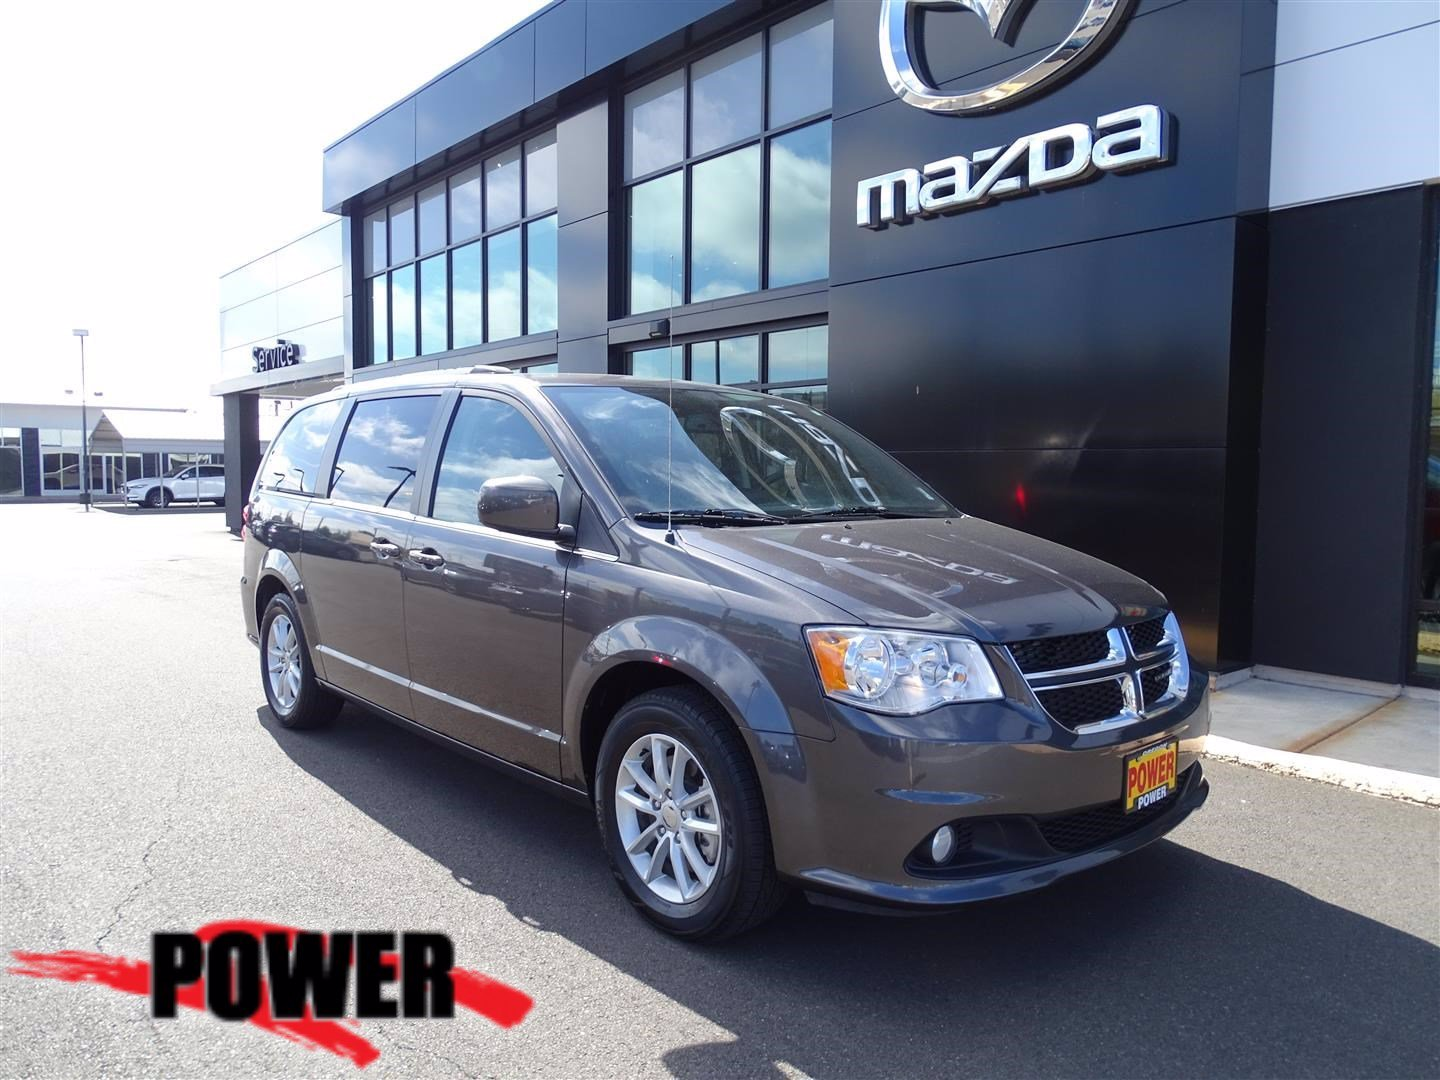 Pre Owned 2019 Dodge Grand Caravan Sxt Mini Van Passenger In Salem P21880 Power Mazda